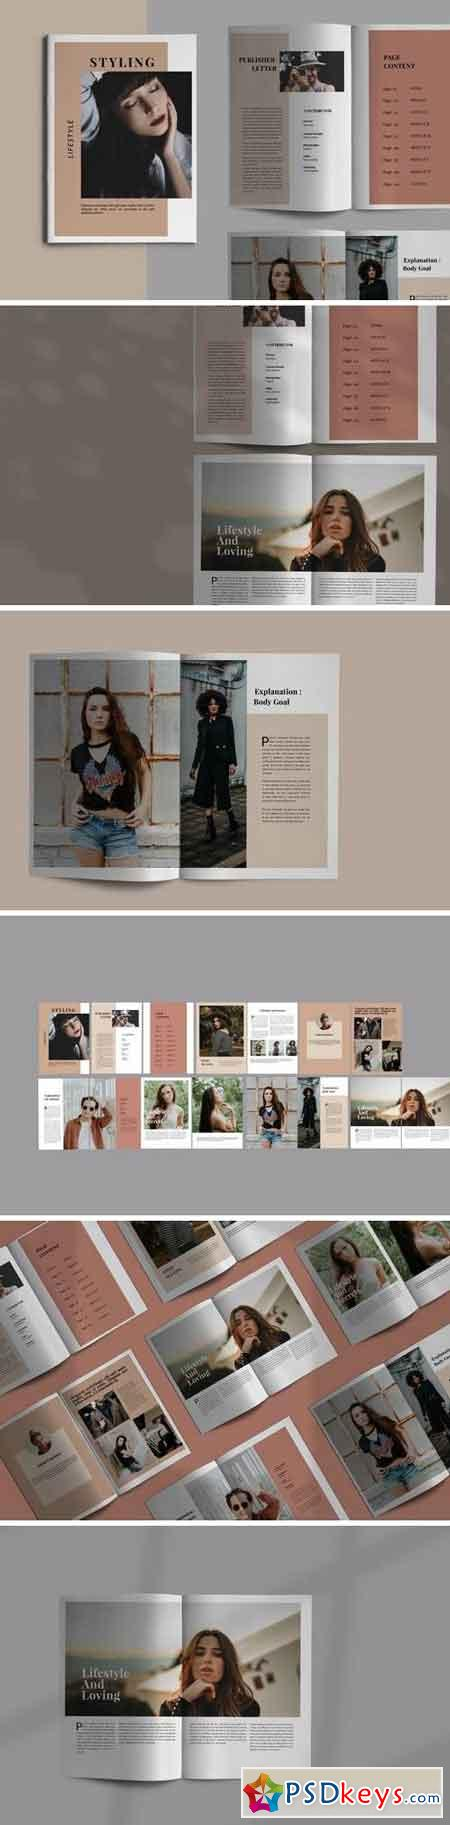 Styling Fashioned - Brochure